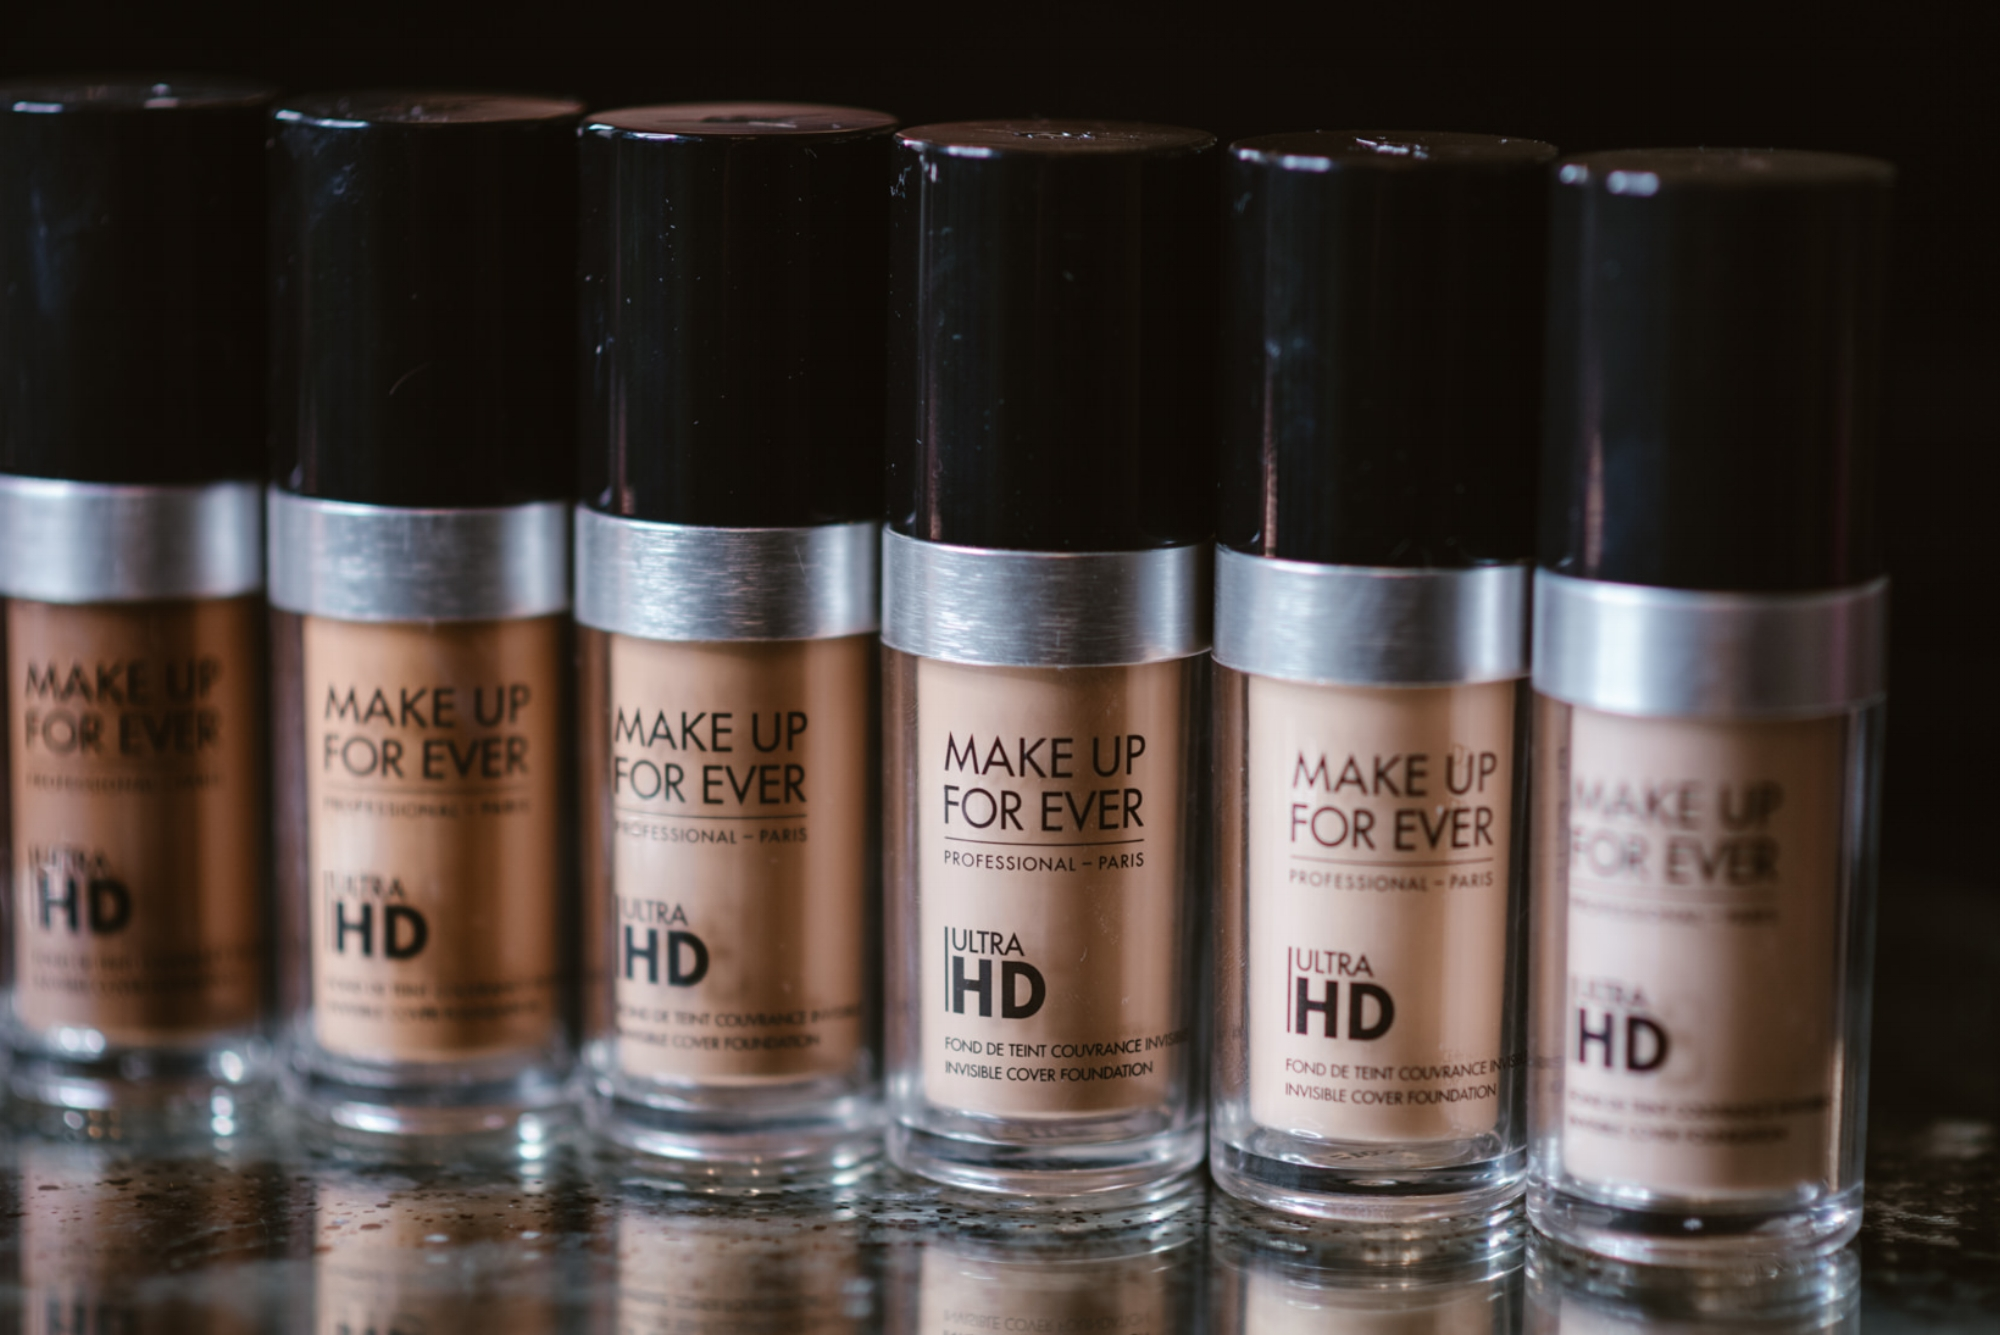 Make Up Forever Ultra HD Foundations